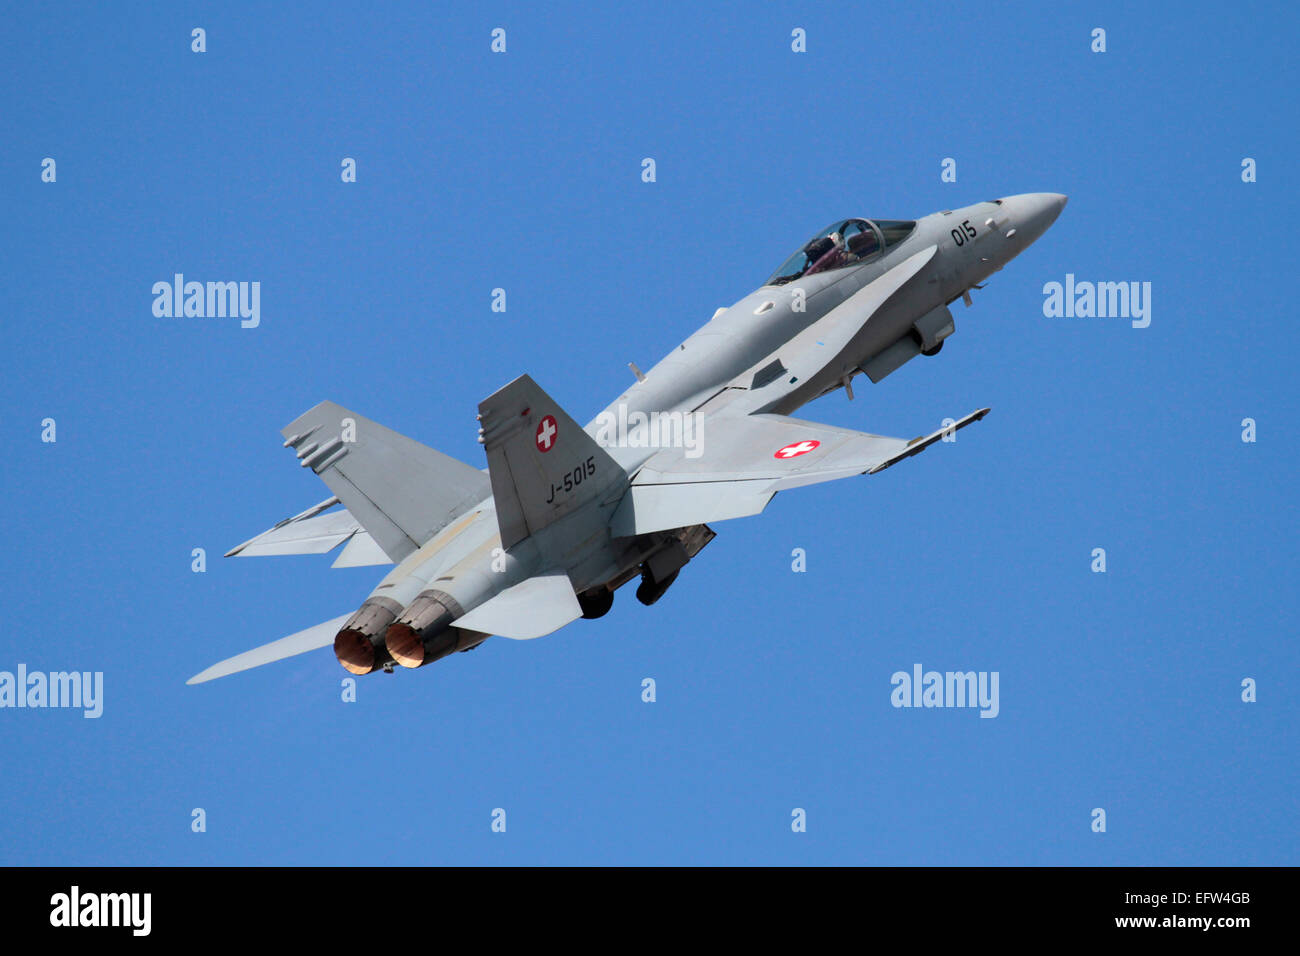 Swiss Air Force F-18 Hornet fighter jet aircraft taking off against a clear blue sky. Military aviation. - Stock Image